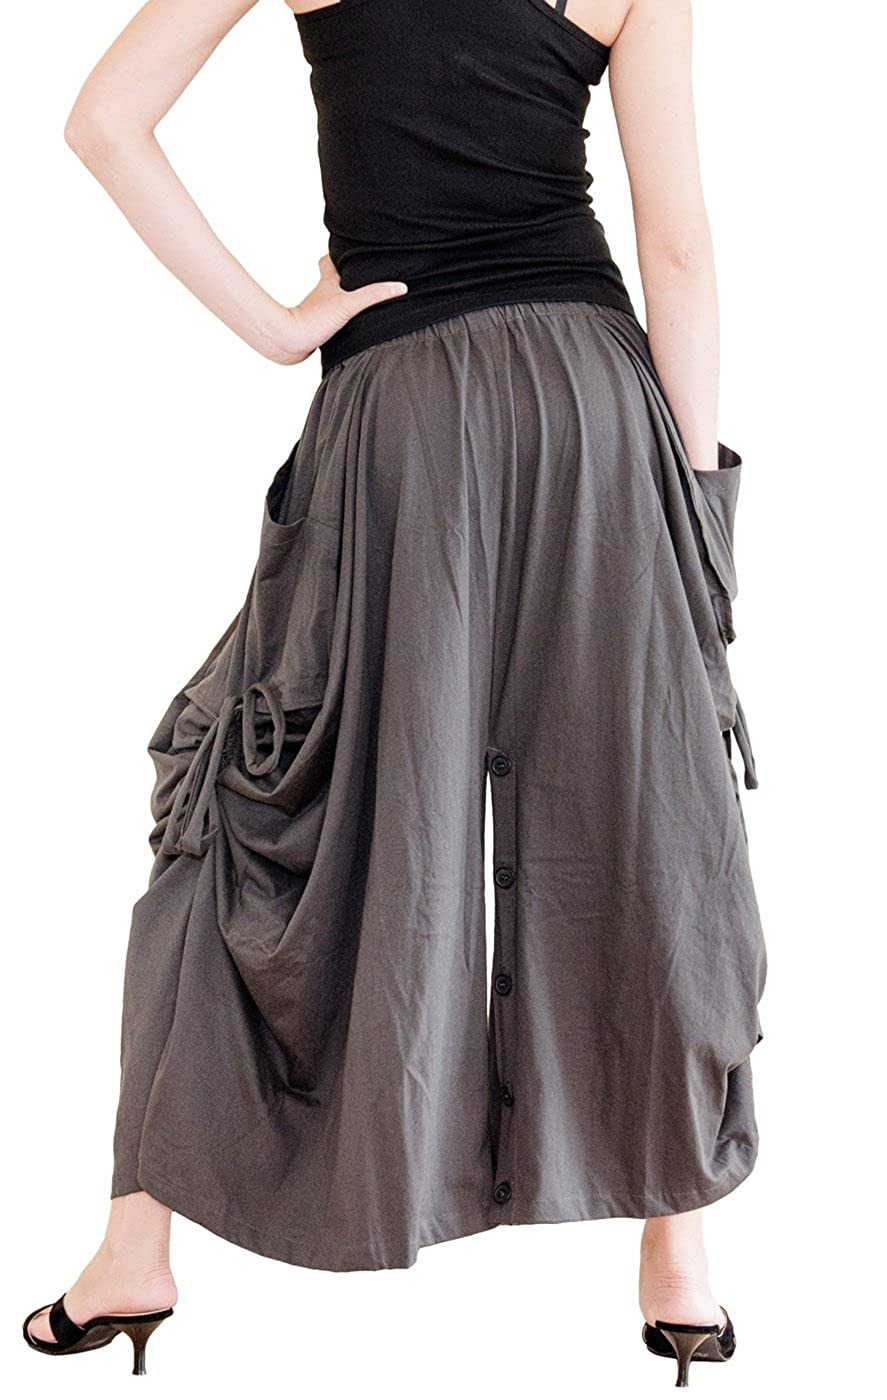 Women's Charcoal Cotton Jersey Versatile Maxi Convertible Skirt Pants Over-Skirt - DeluxeAdultCostumes.com